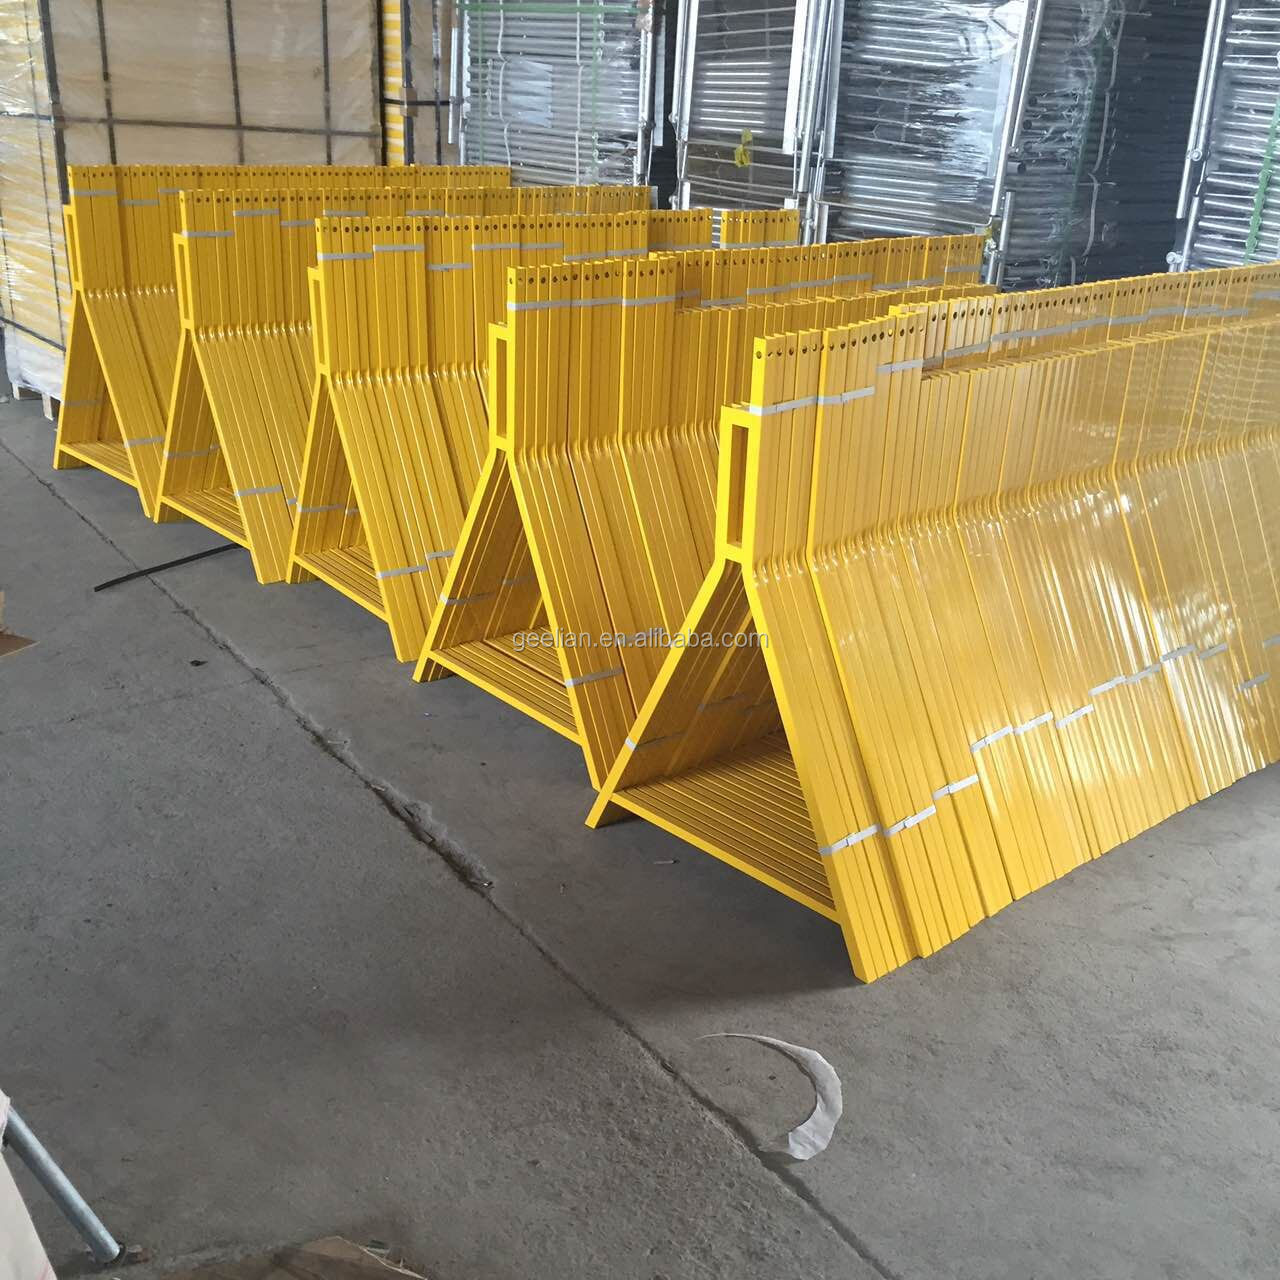 Made in China barricade / crowd control barrier / barricade fence